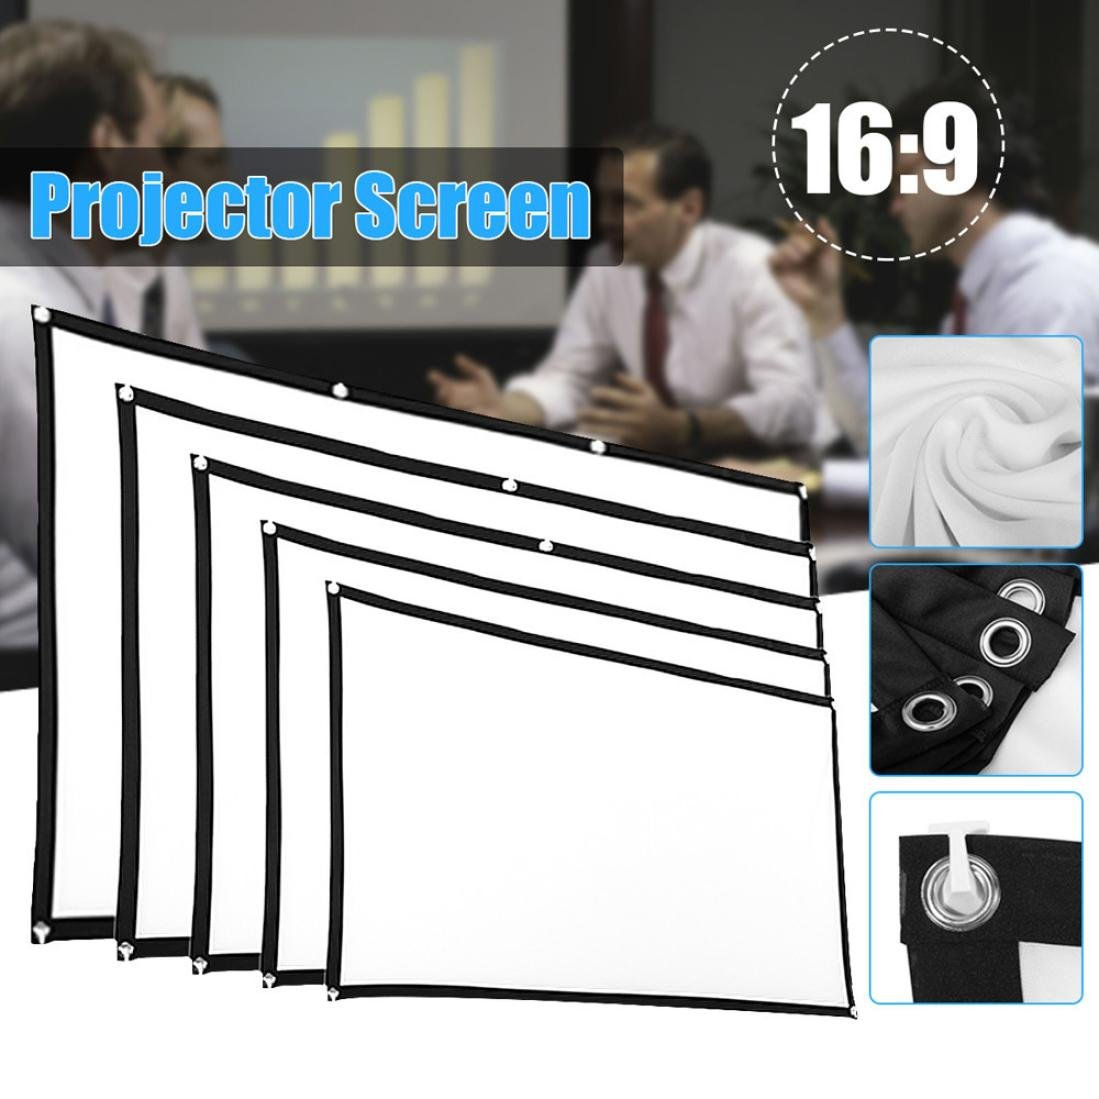 Portable Projector High Definition Curtain Portable Screen by Ikevan